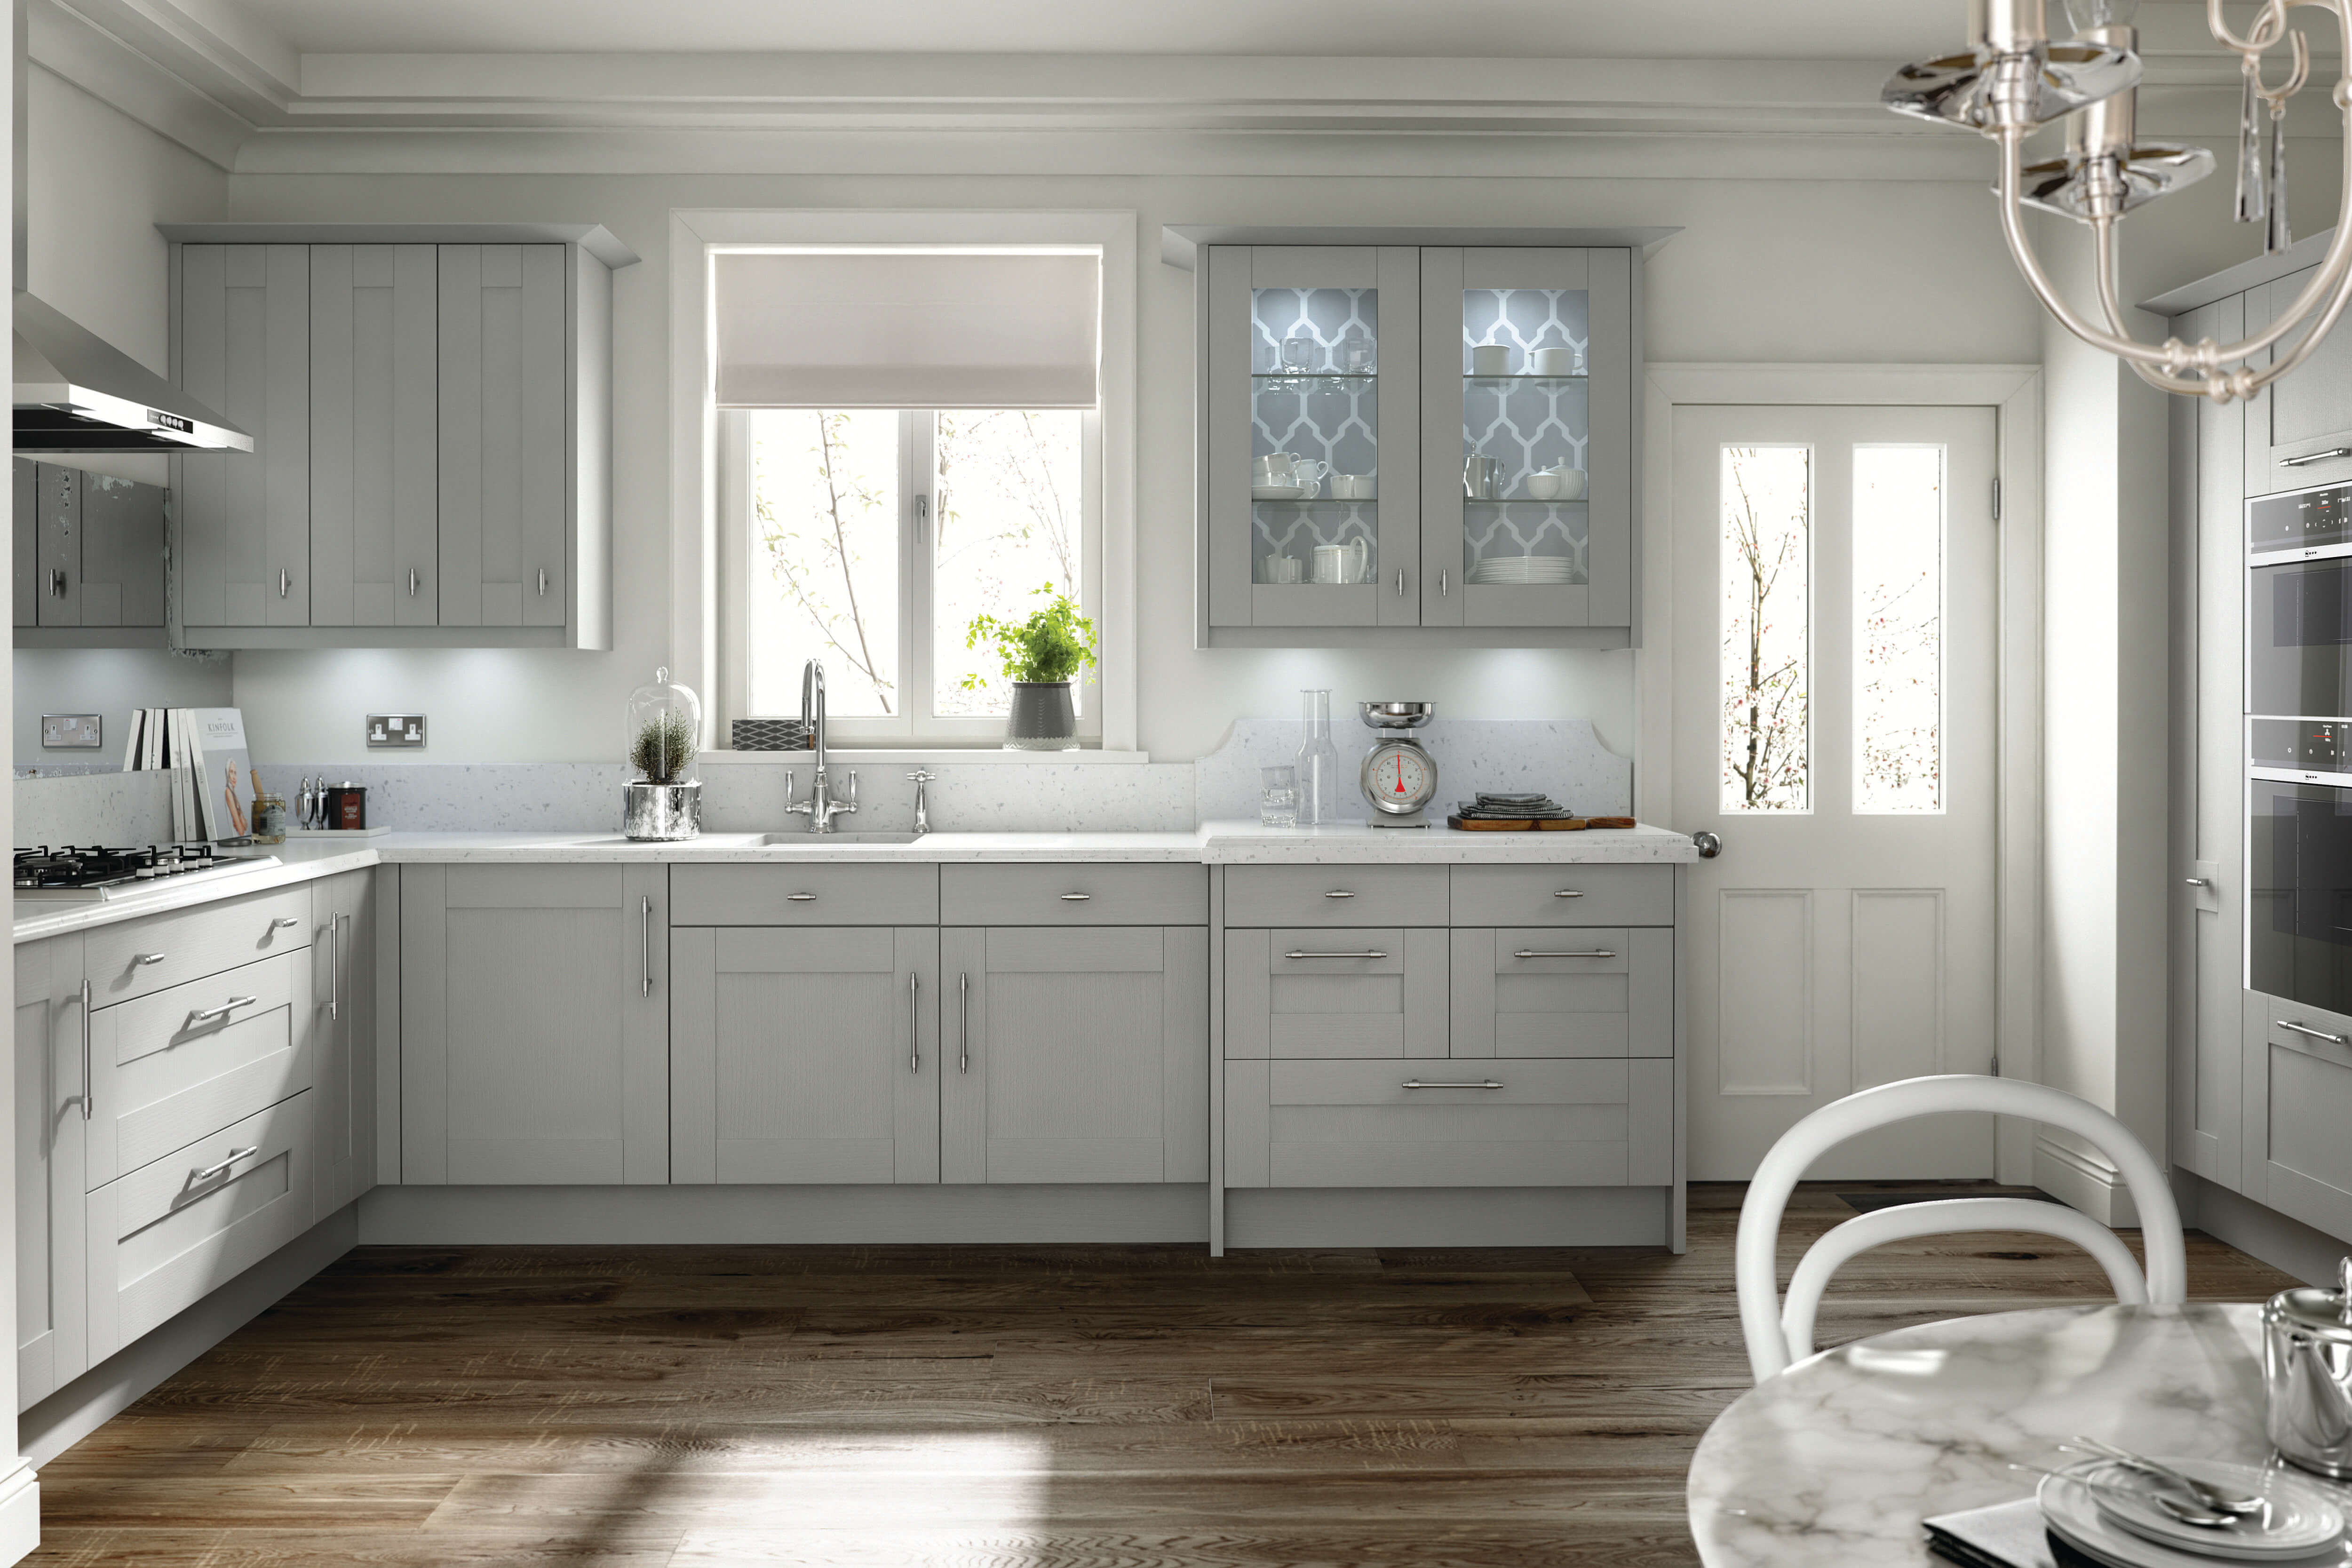 Alchemy-Kitchens-Broadoak-Gallery2